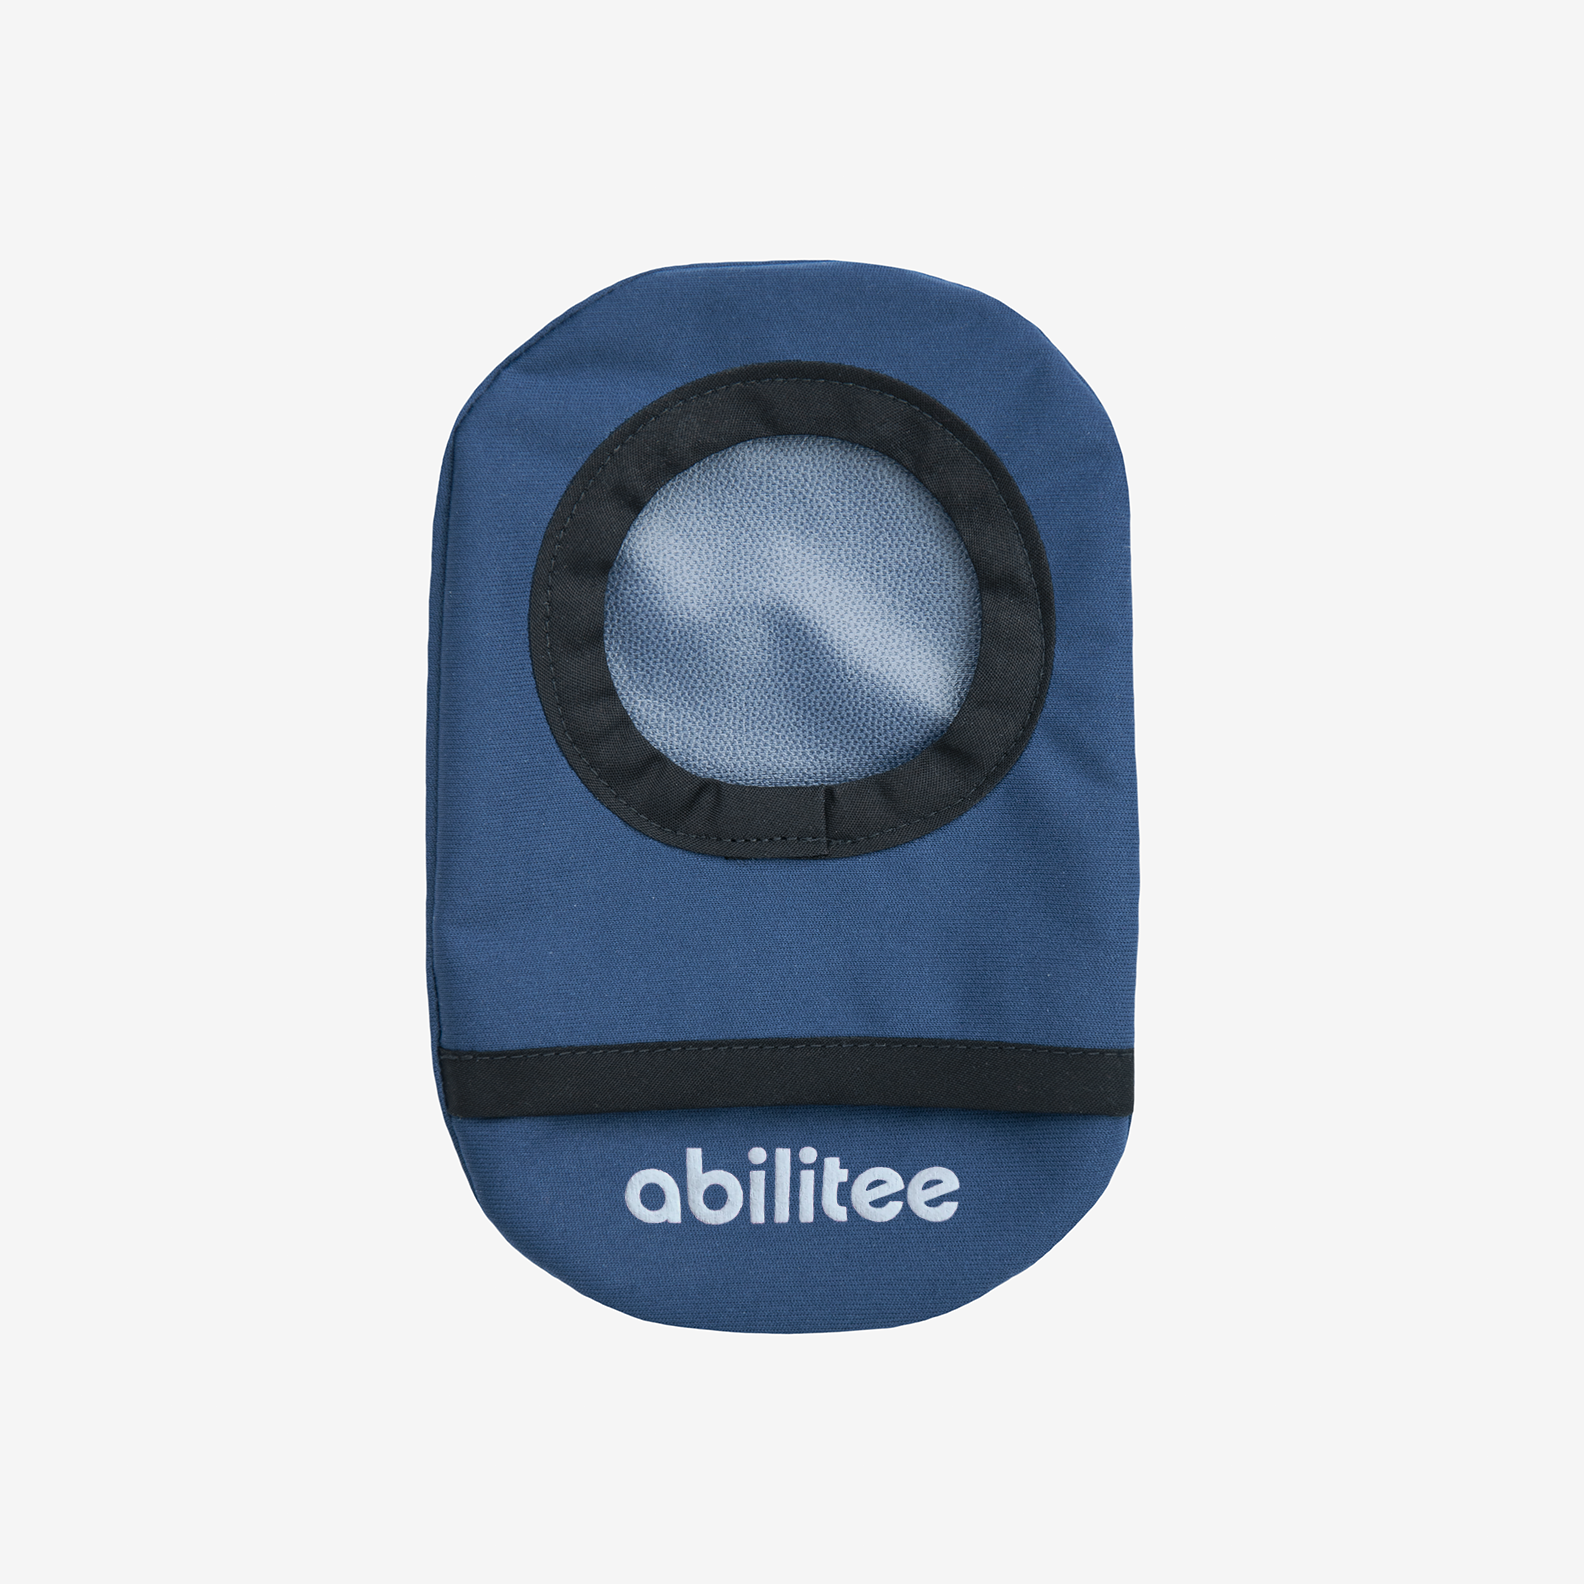 Ostomy bag cover in navy water-resistant fabric